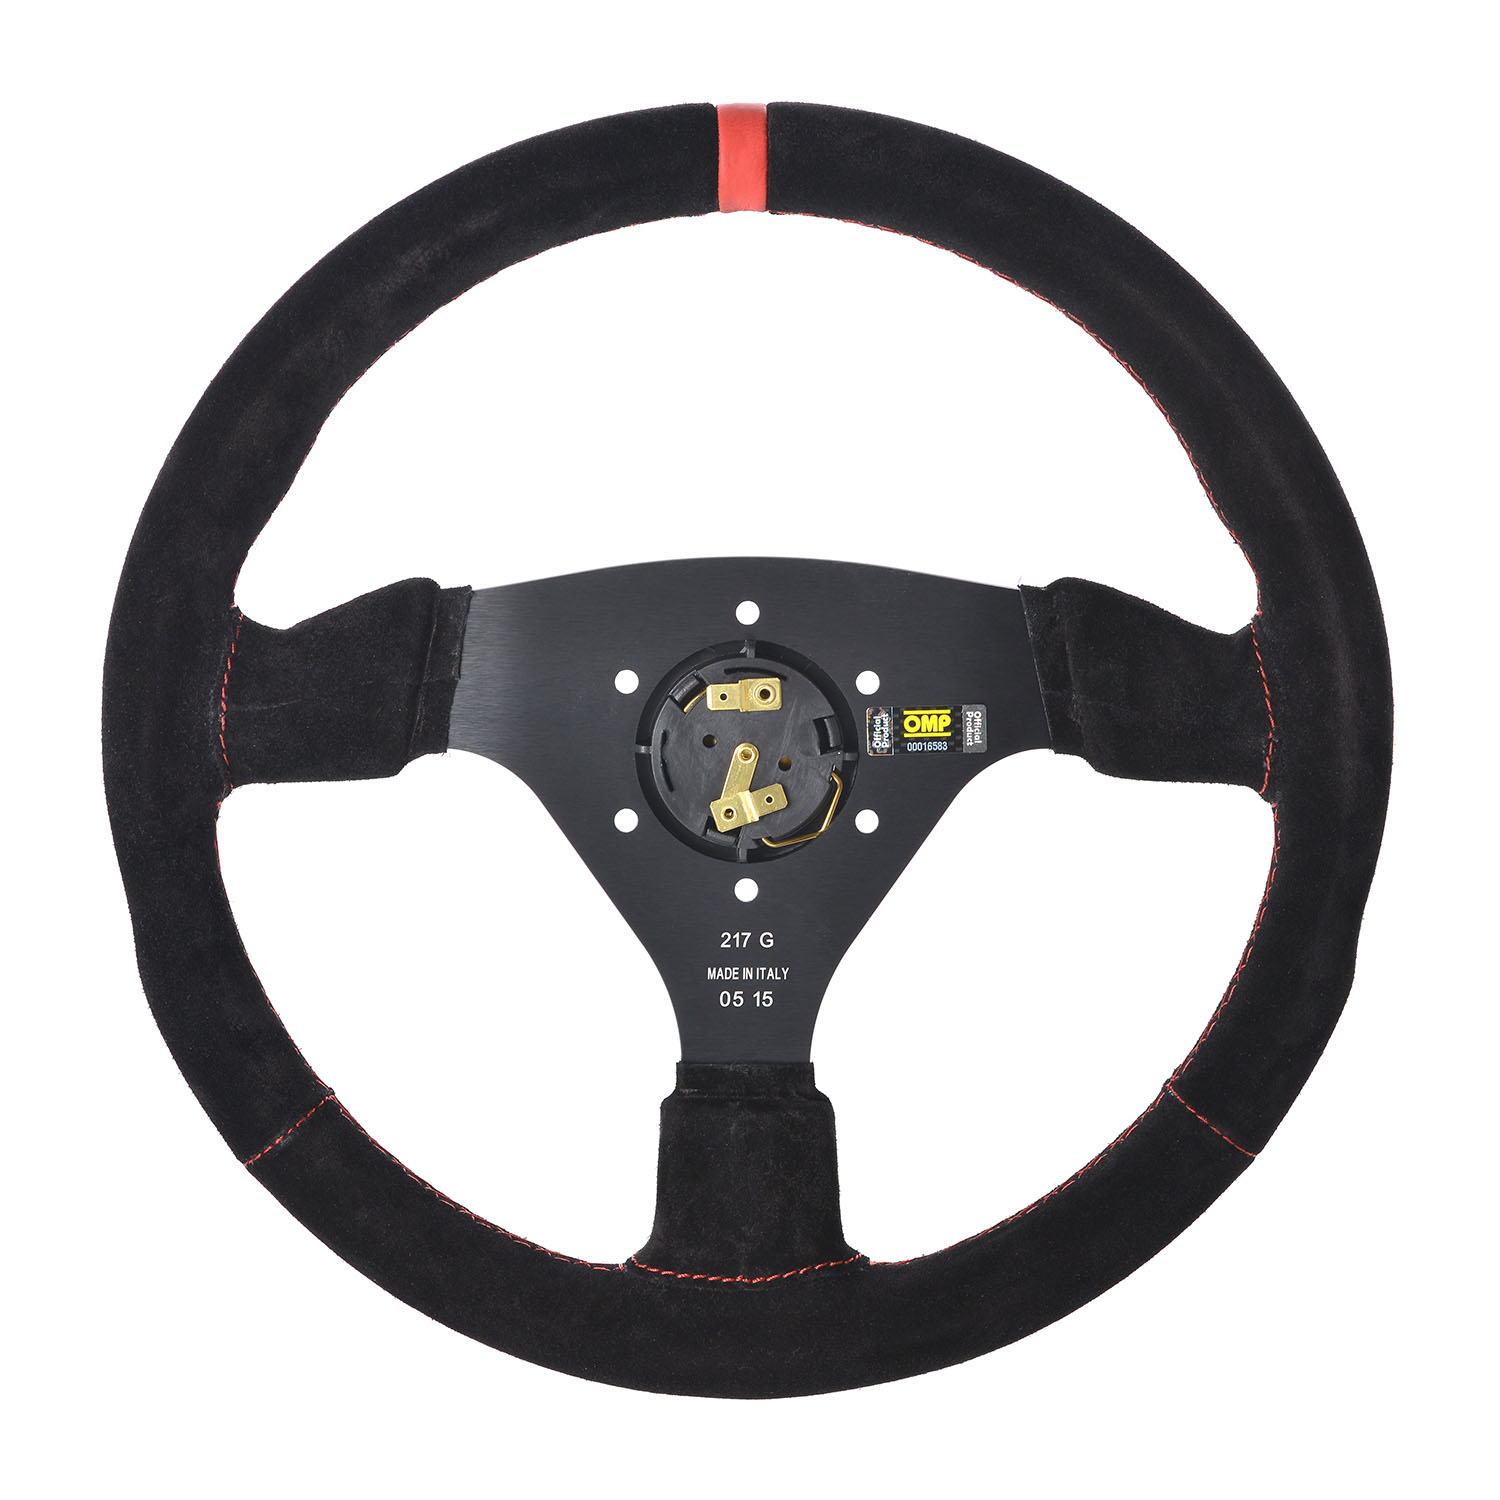 Tuning Rally OMP RALLY Steering Wheel SUEDE LEATHER BLUE ANODIZED Race